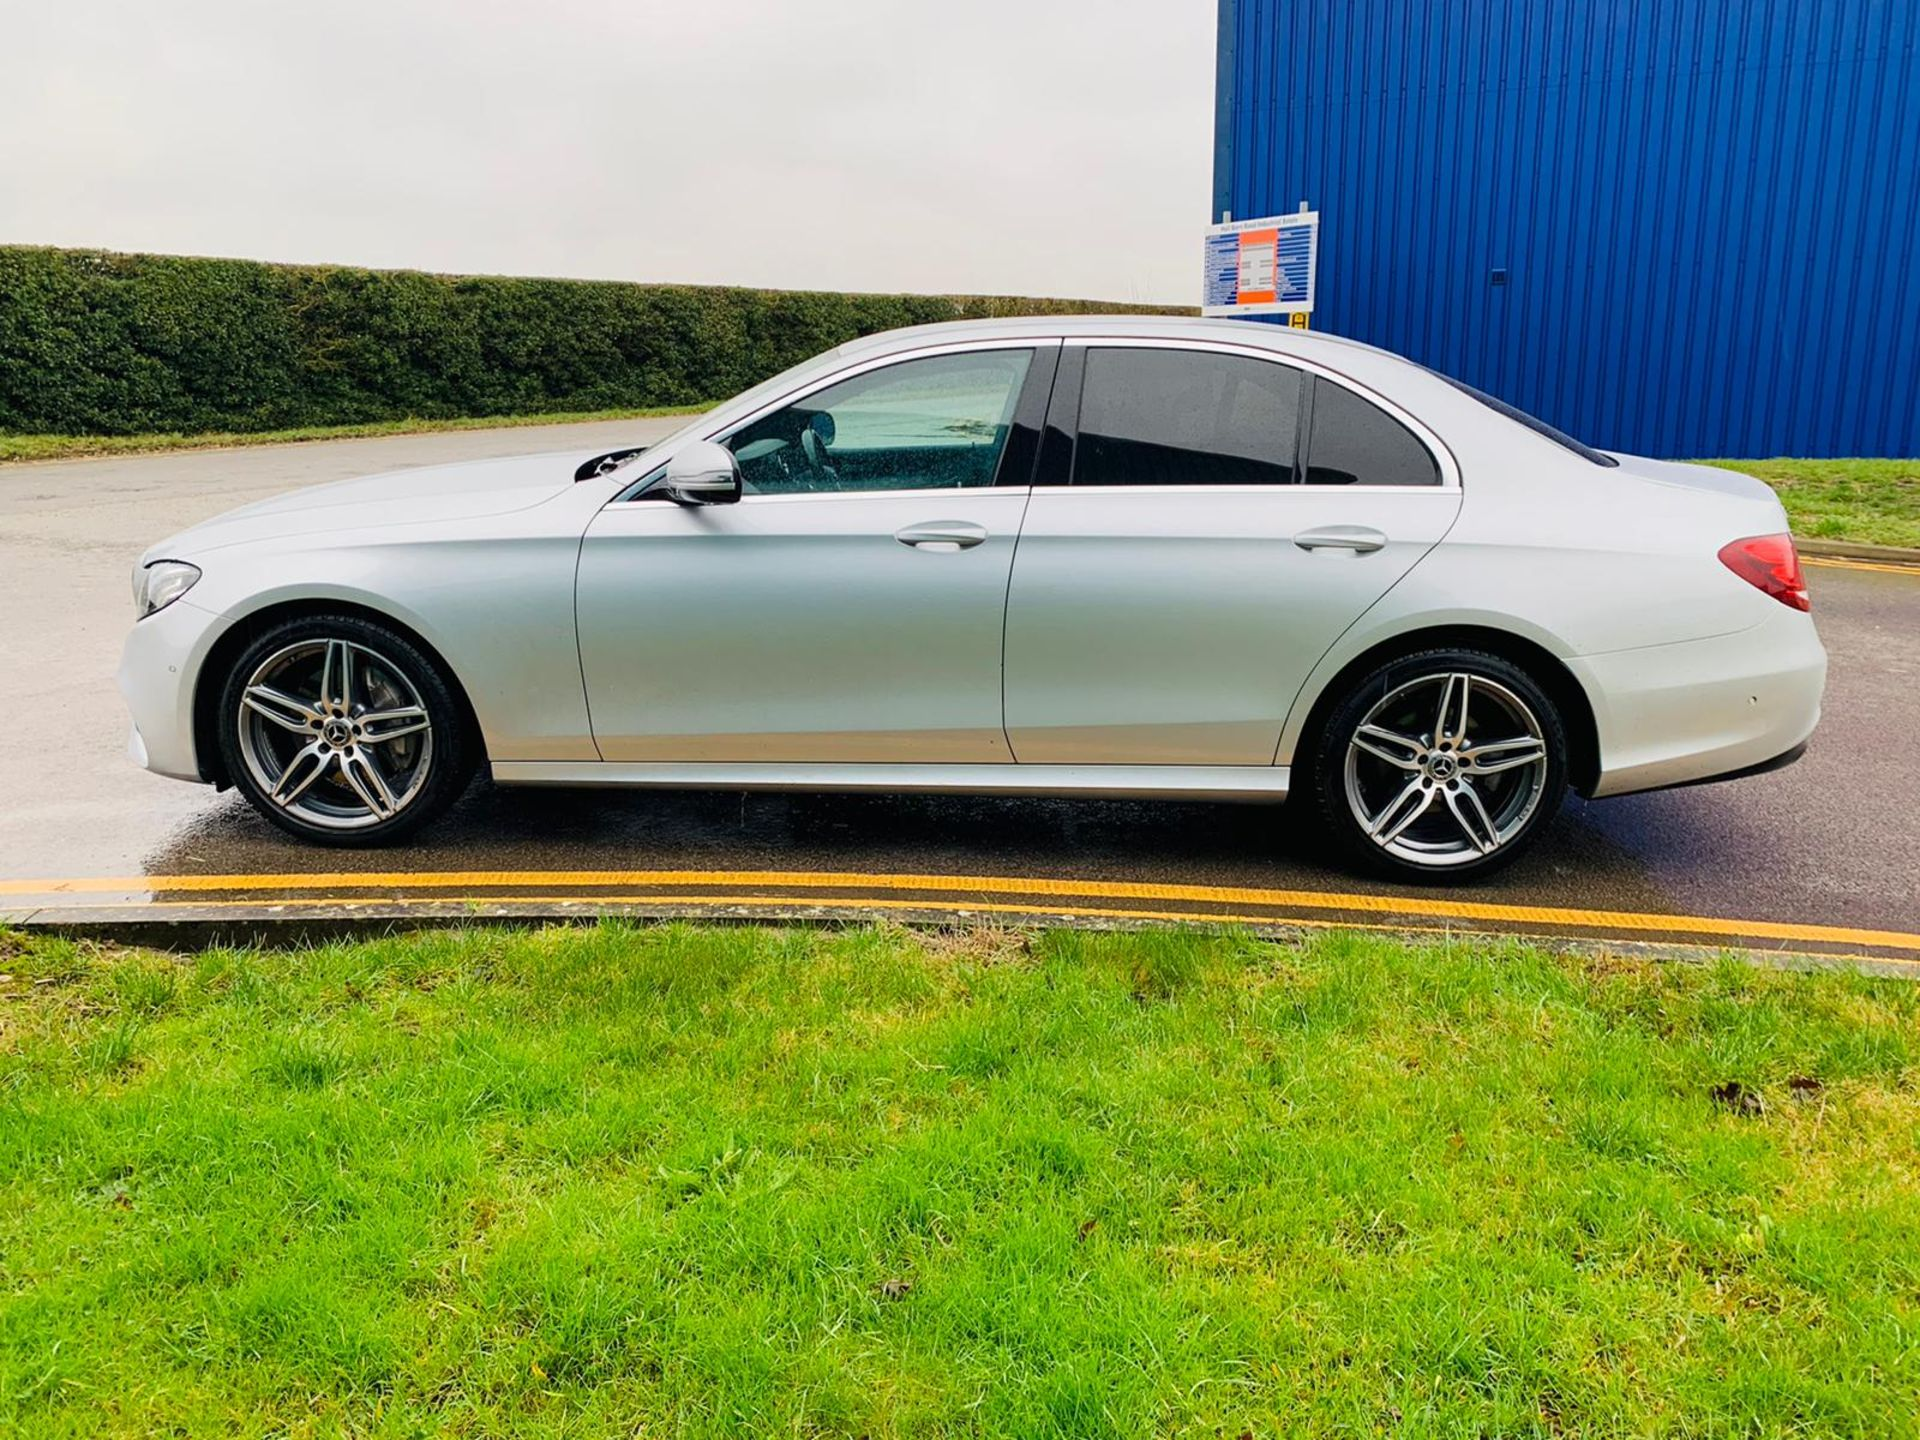 (Reserve Met)Mercedes E220d AMG Line Auto 9G Tronic - 2019 Reg - Reversing Cam - 1 Owner From New - Image 8 of 30